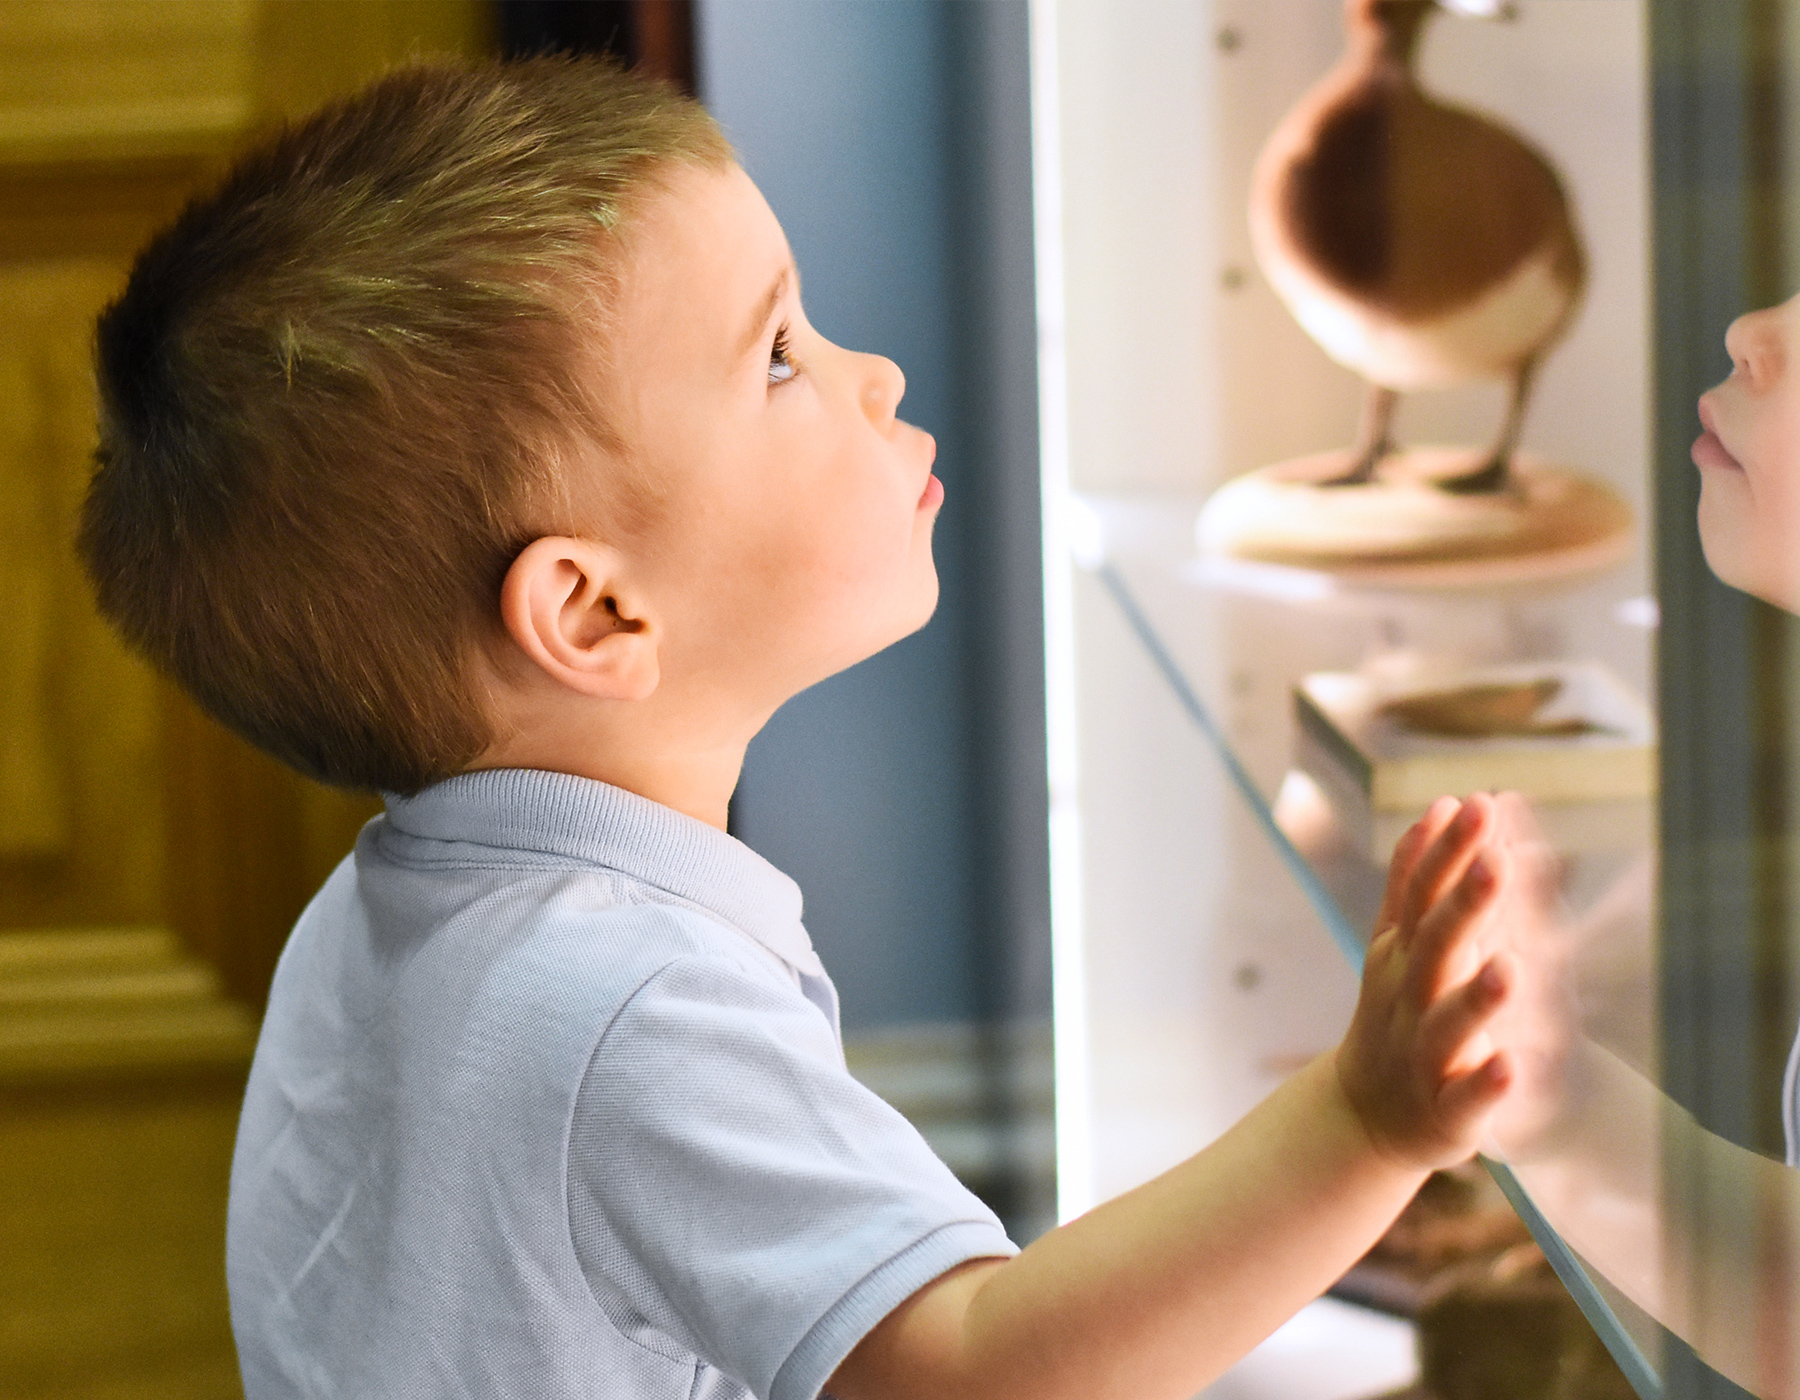 Young child looking at museum display cabinet